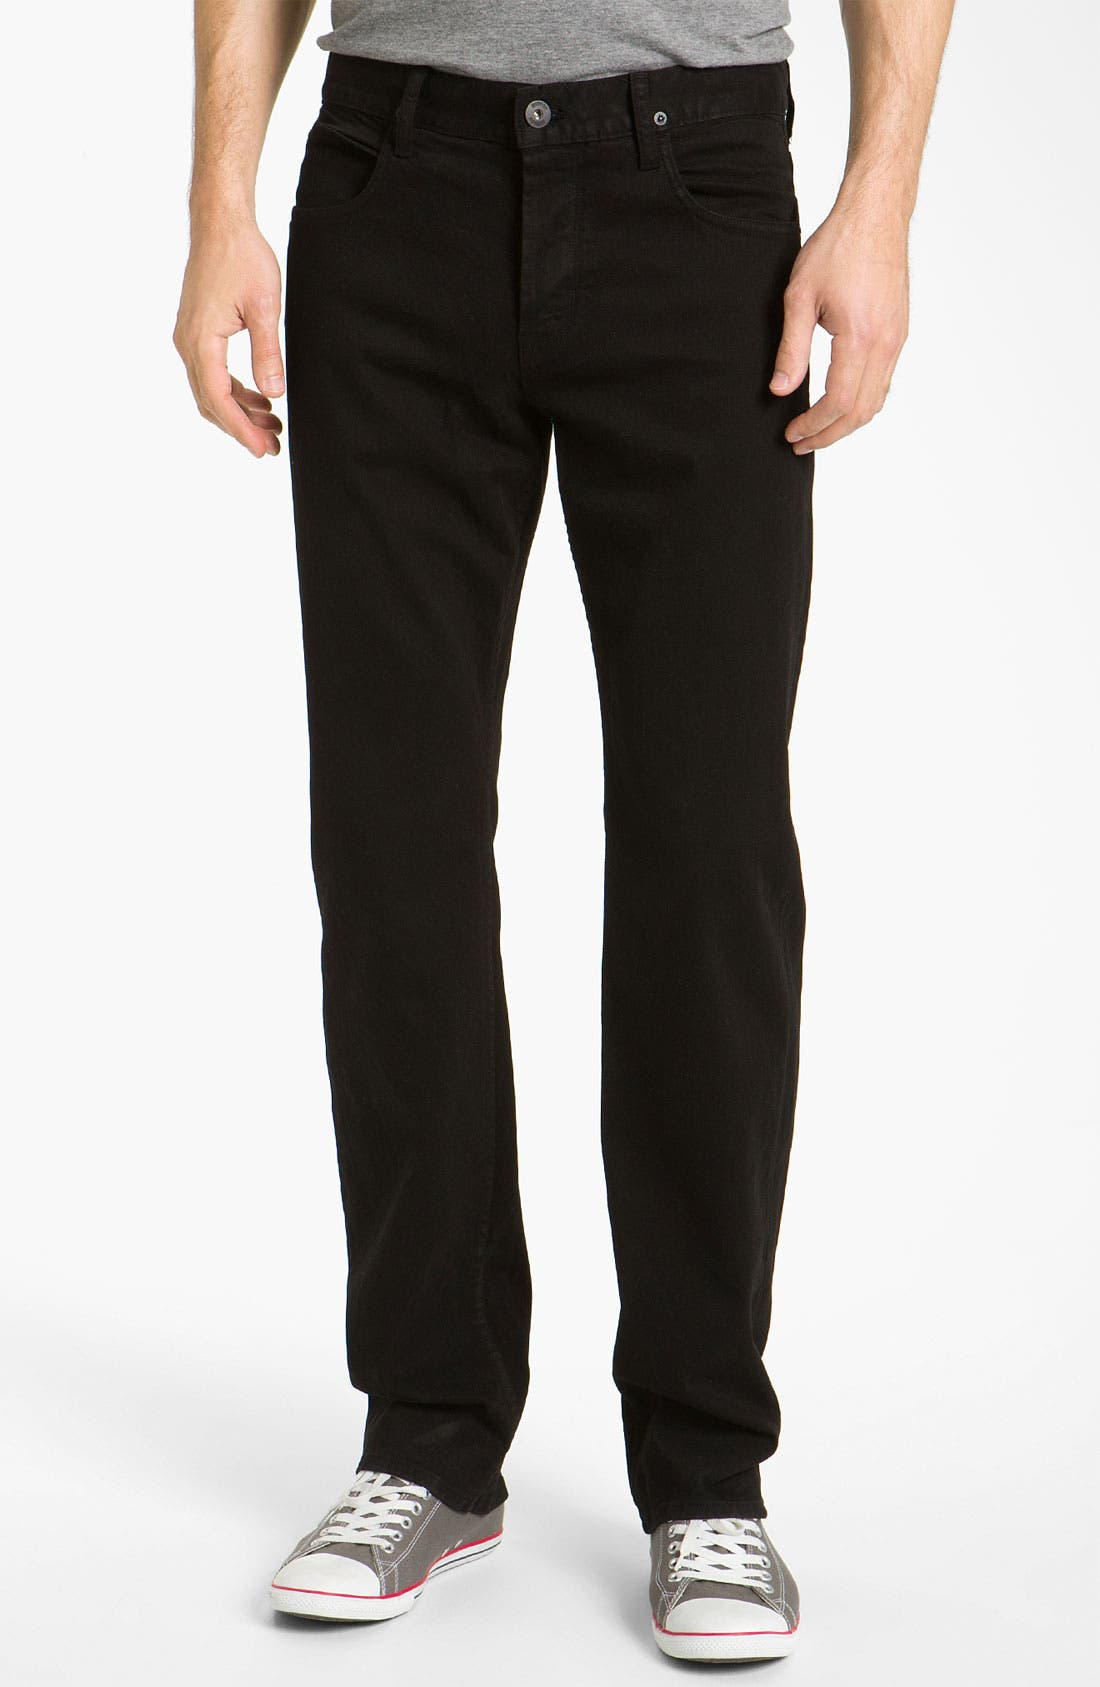 Alternate Image 2  - Hudson Jeans 'Buckley Athletic' Straight Leg Jeans (Jet Black)